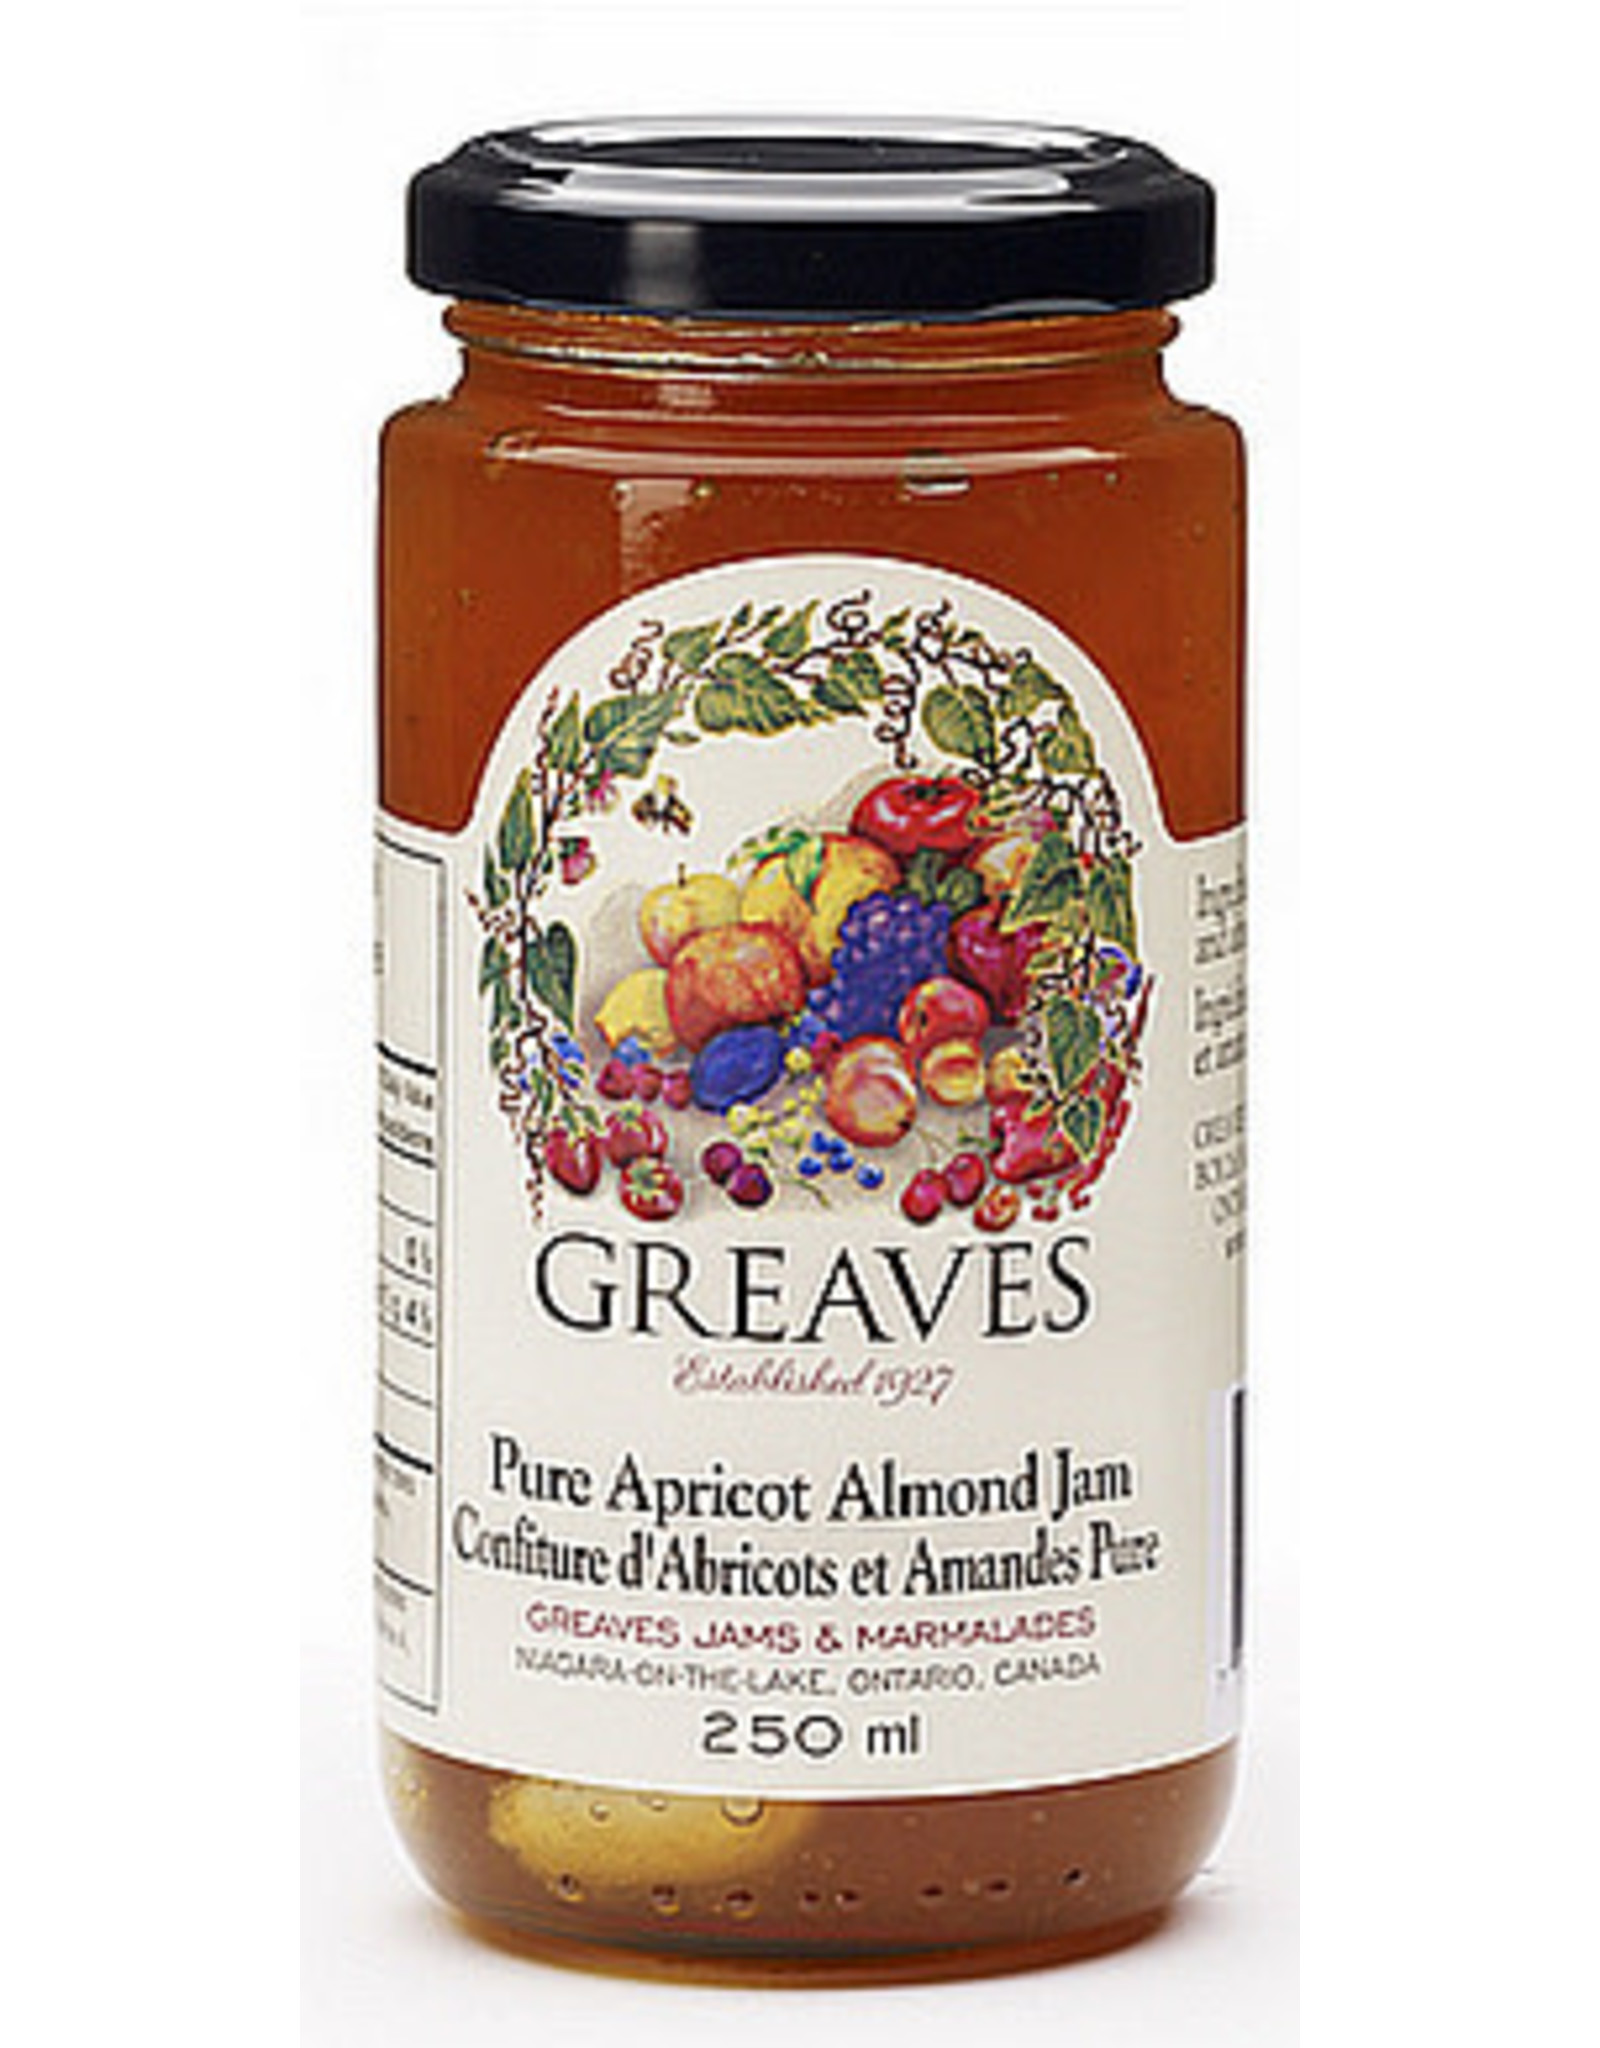 Greaves Jams & Marmalades Ltd. Greaves, Apricot Almond Jam, 250ml